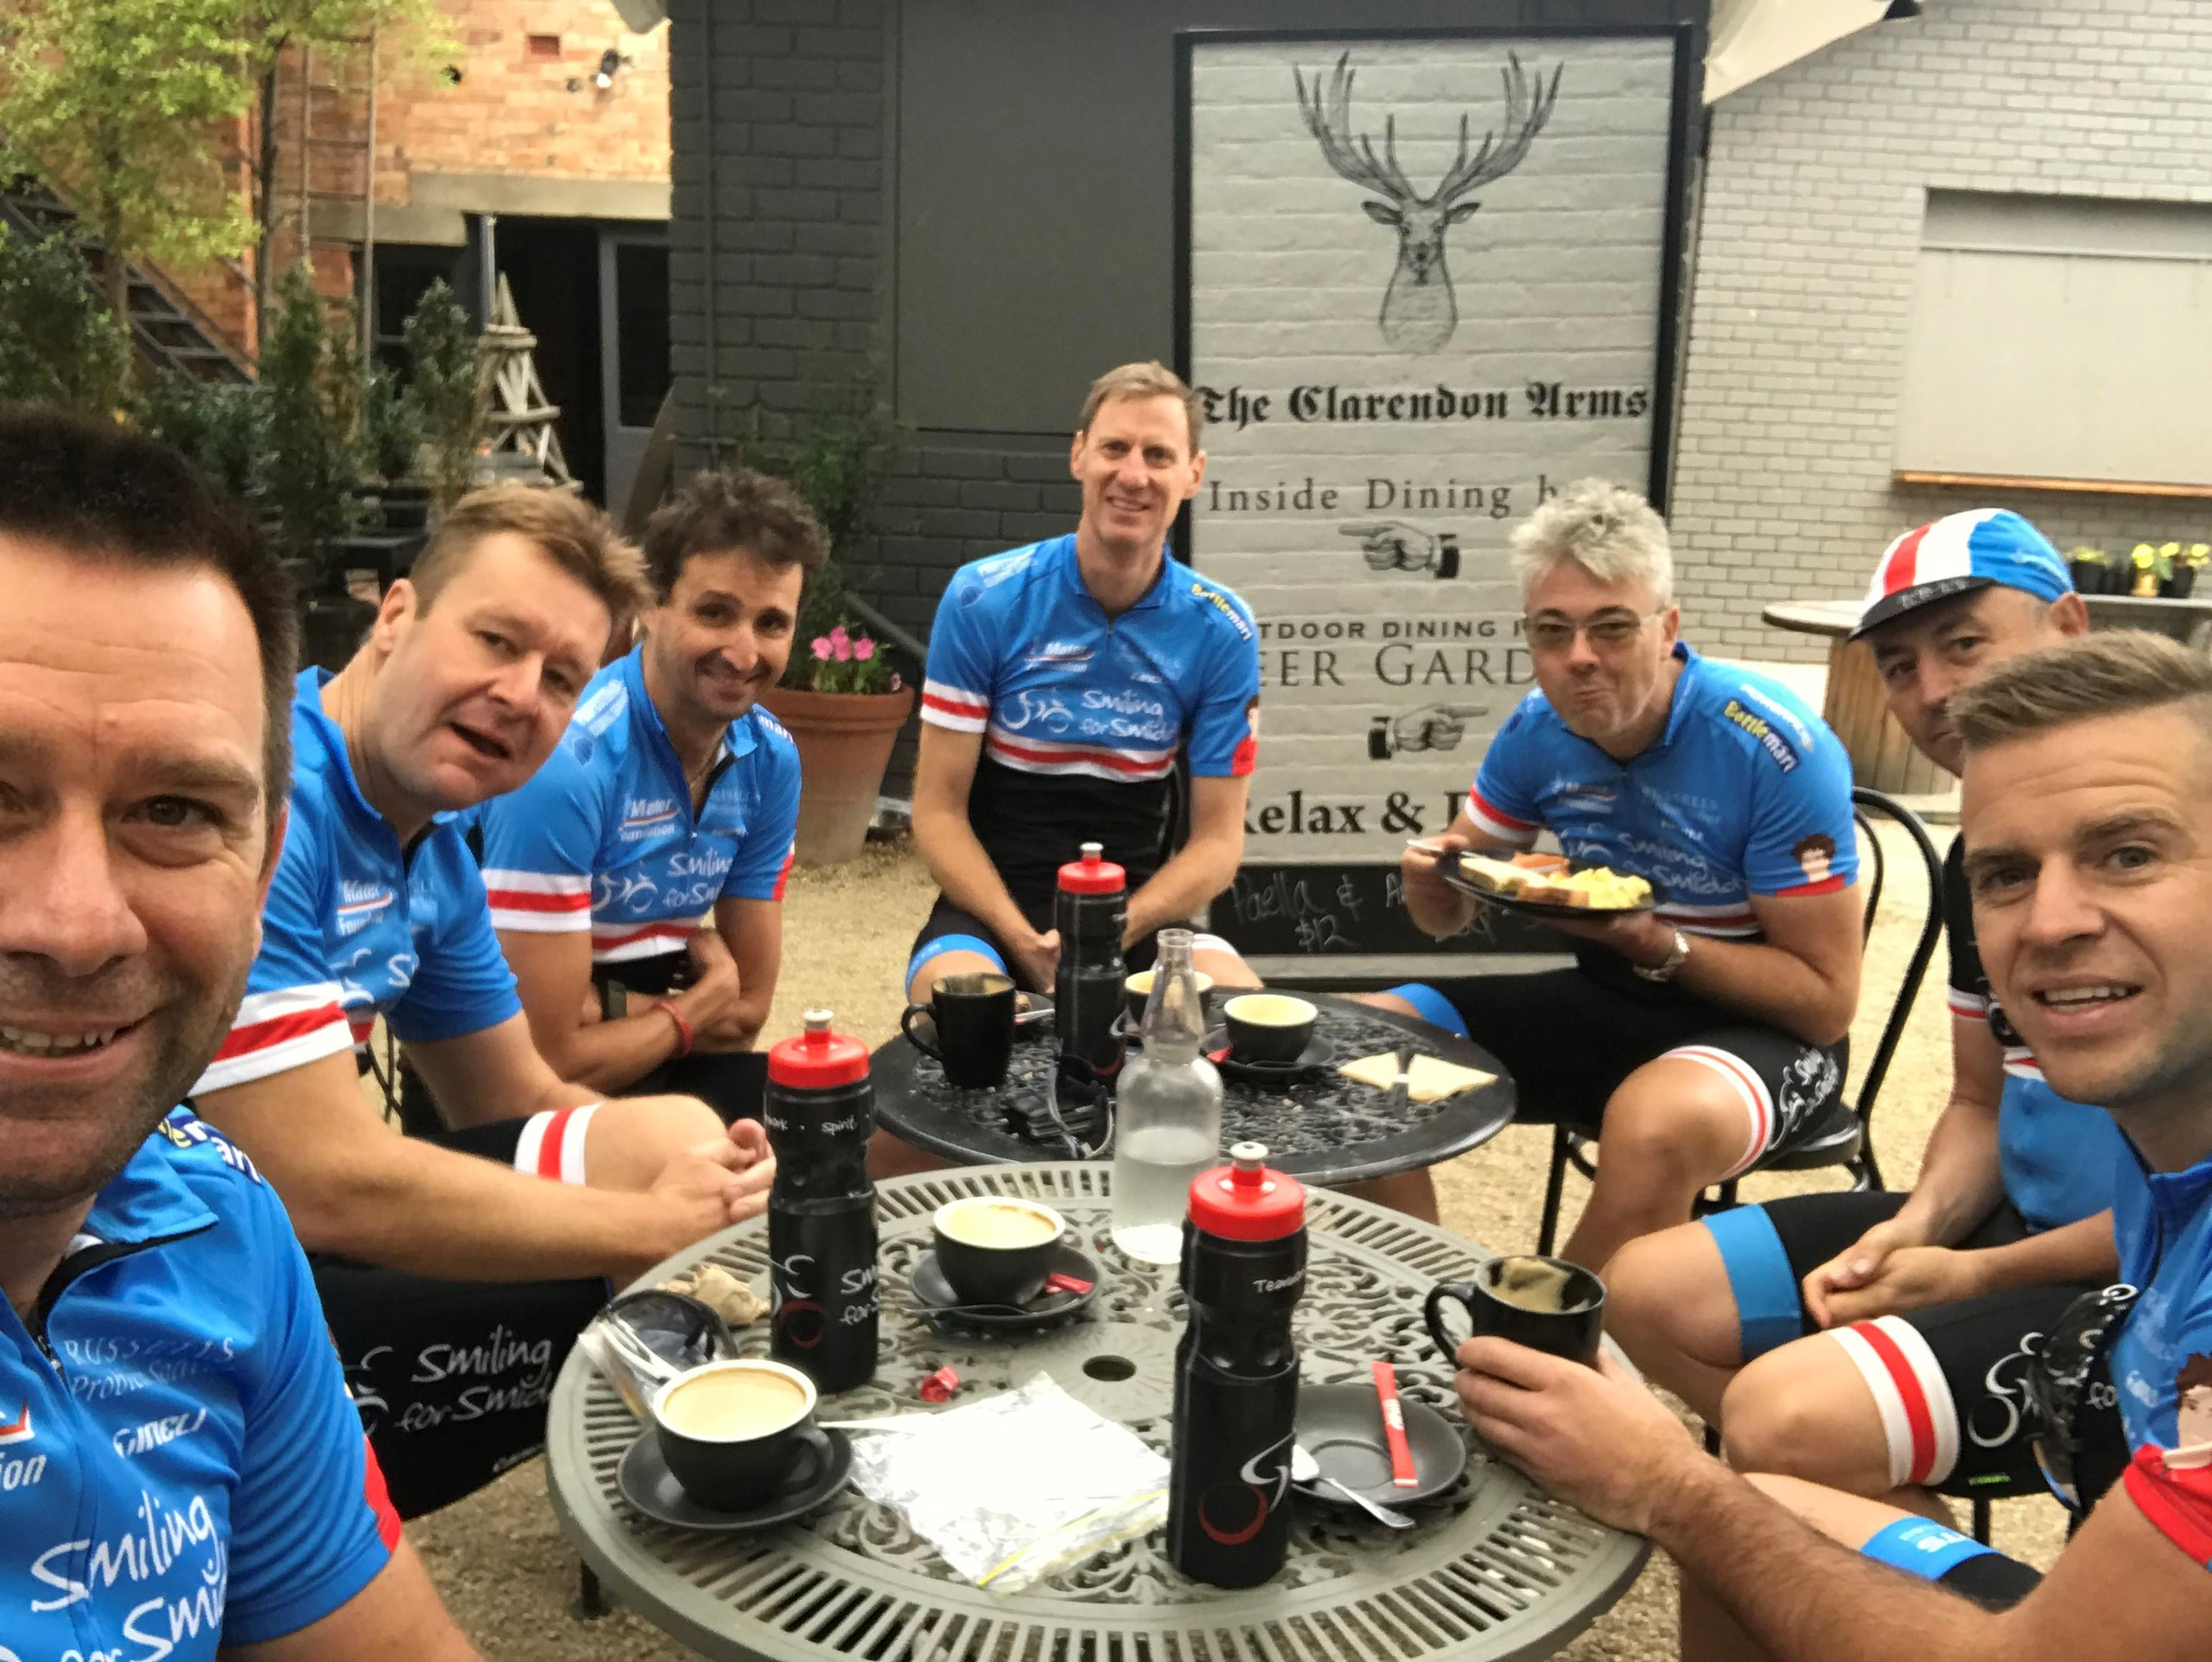 Smiling for Smiddy Team Harcourts (Tas ride 2018)